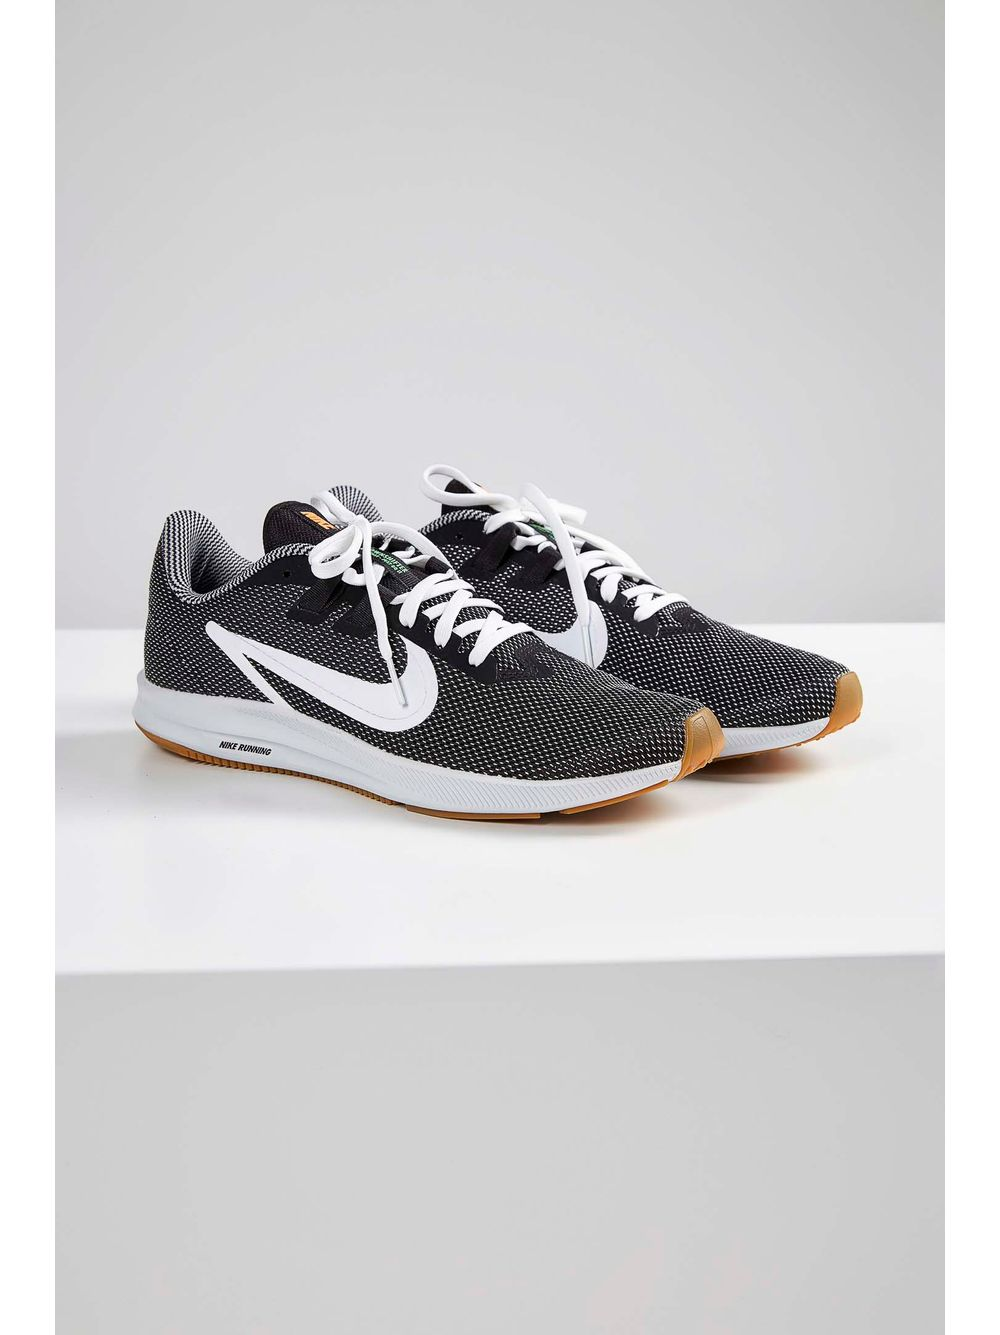 63549f66d Previous. Tenis-Corrida-Nike-Downshifter-9-Se-Preto ...